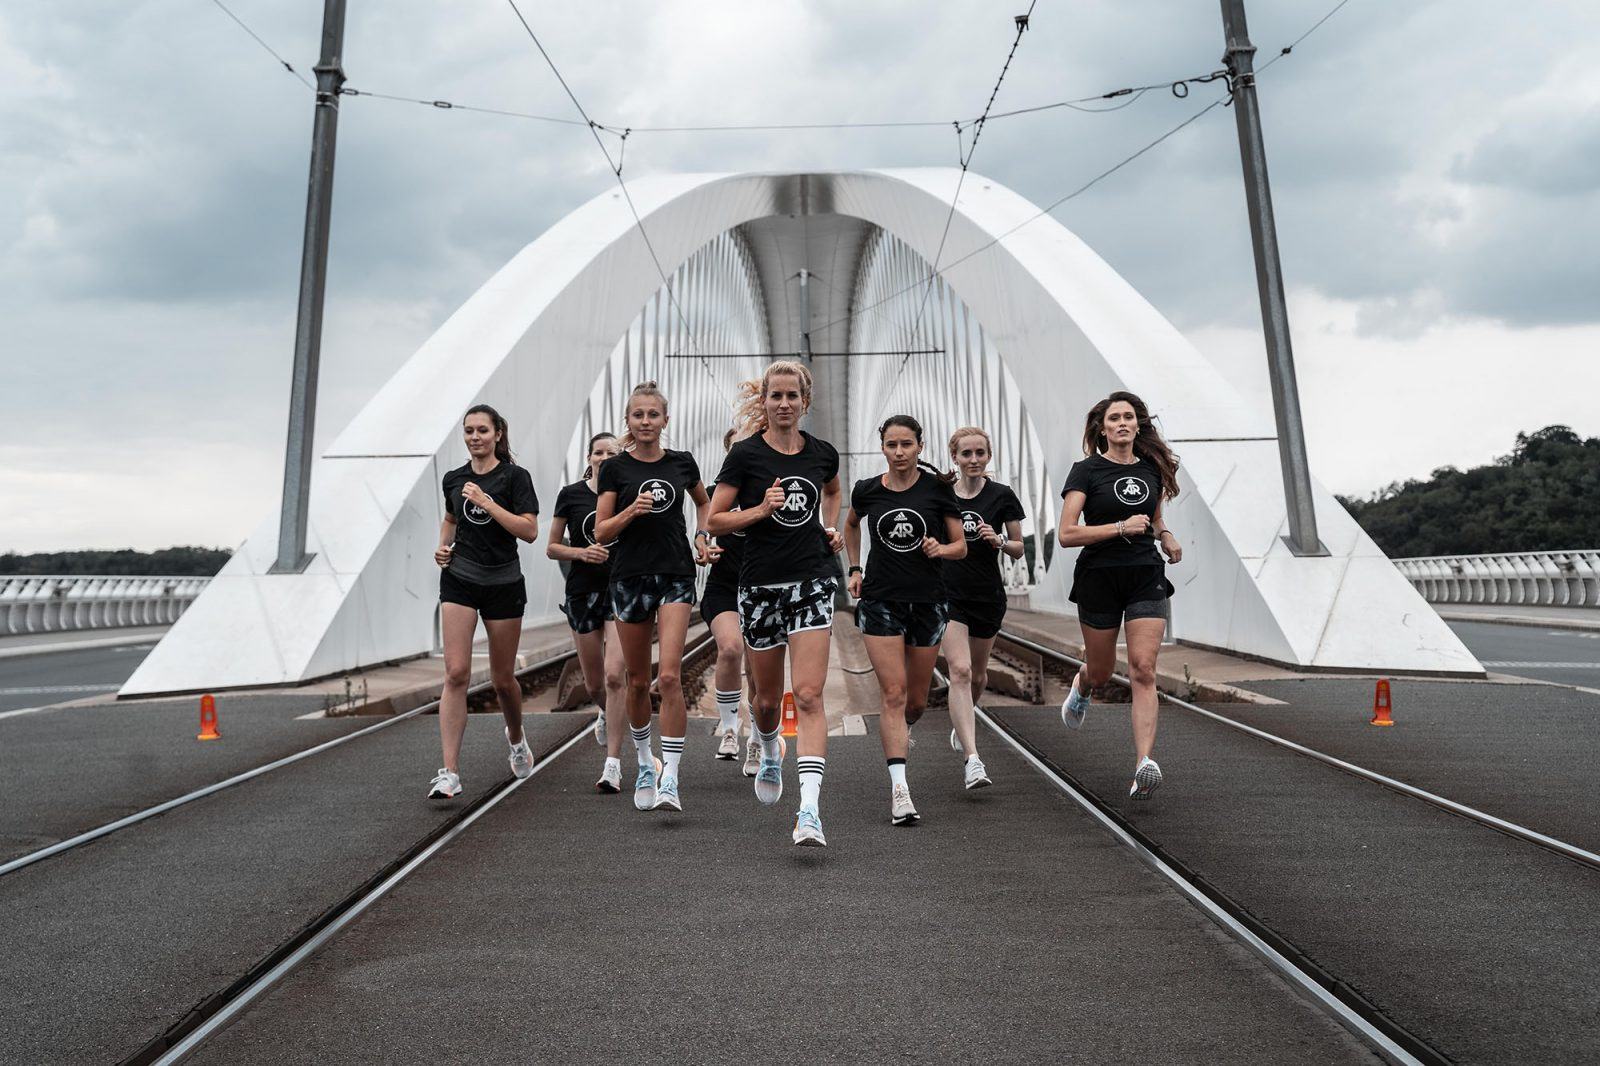 Adidas 'Runbase' project opens this week in Prague's Karlín district